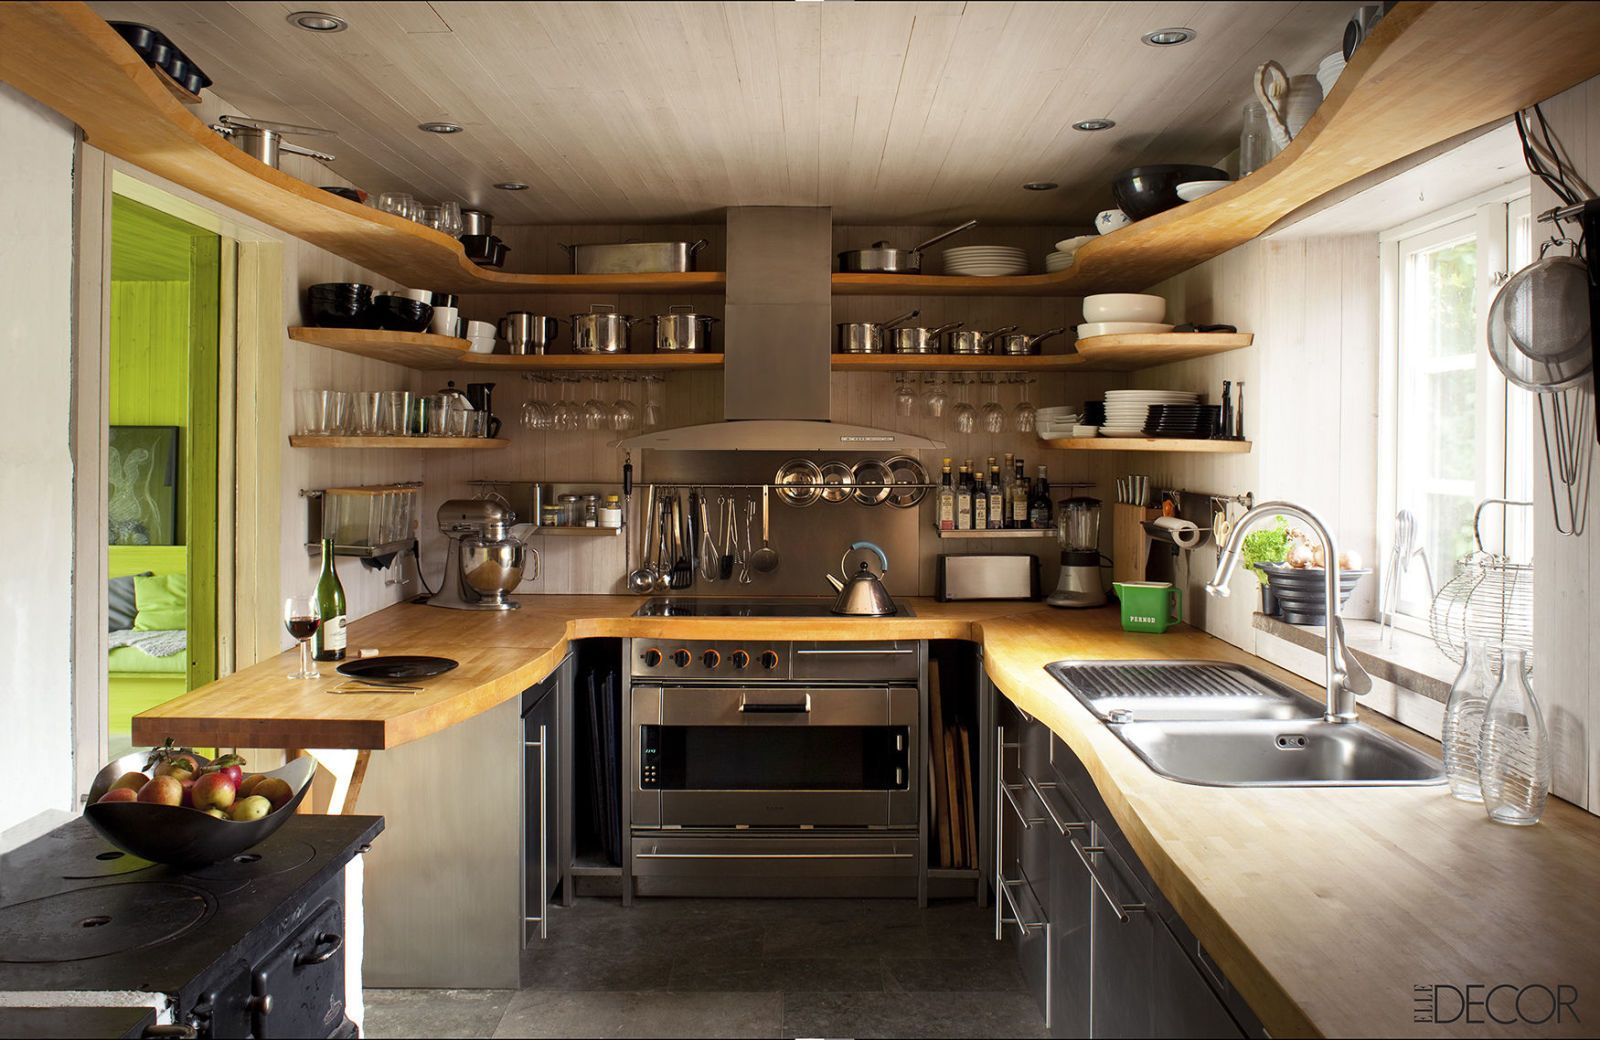 55 Little Kitchens That Will Change Everything You Know About Small Spaces